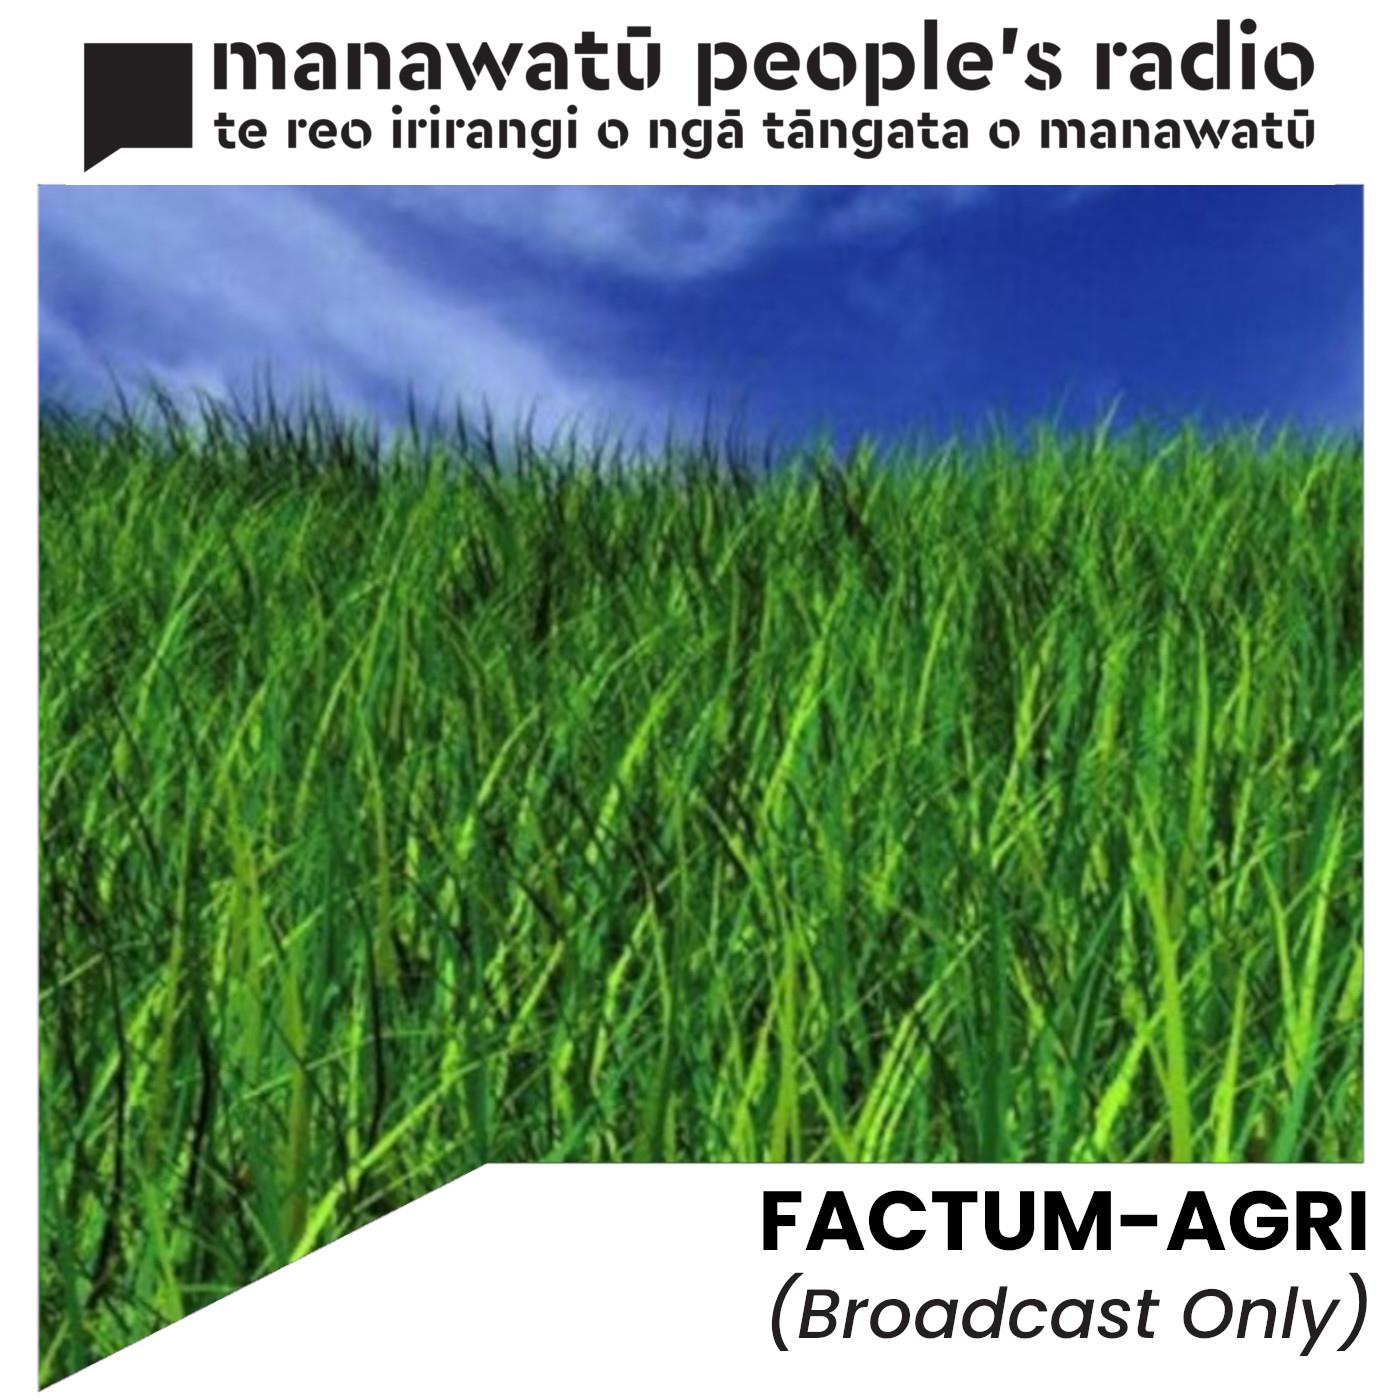 Factum-Agri (Broadcast Only)